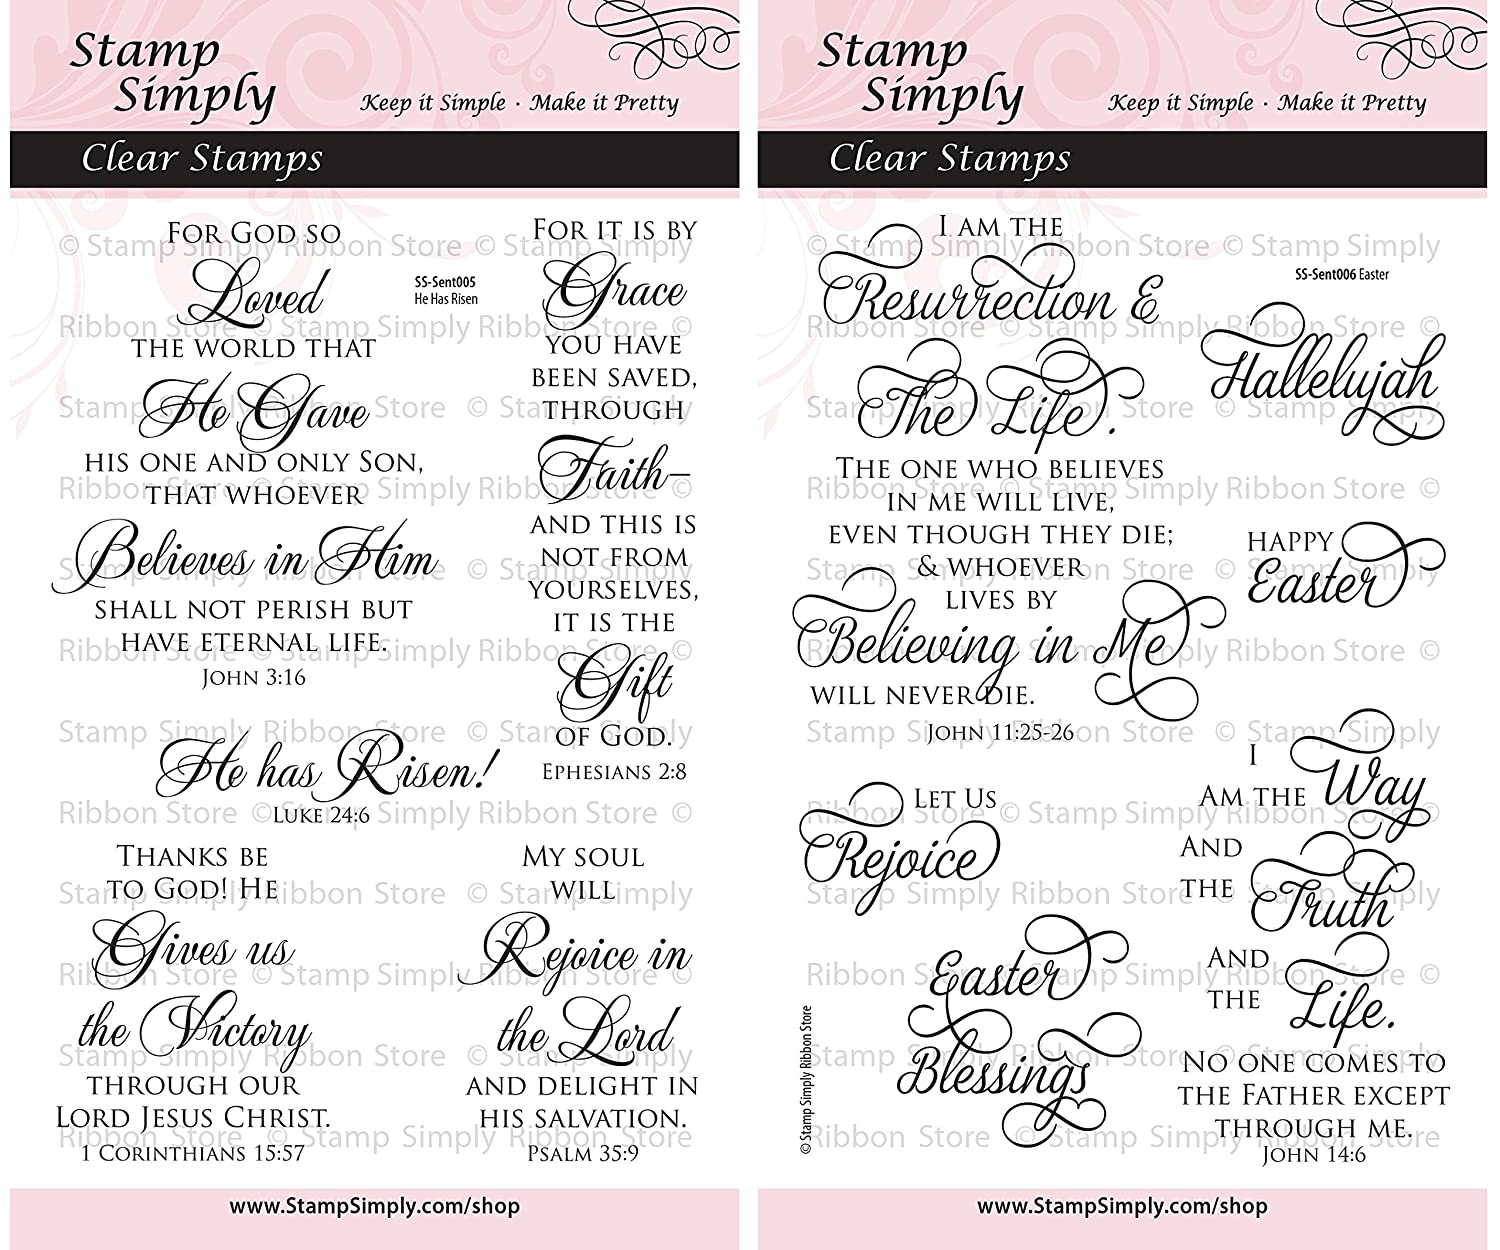 Stamp Simply Clear Stamps Easter Scripture Christian Religious (2-Pack) 4x6 Inch Sheets - 11 Pieces SS-EasterDUO